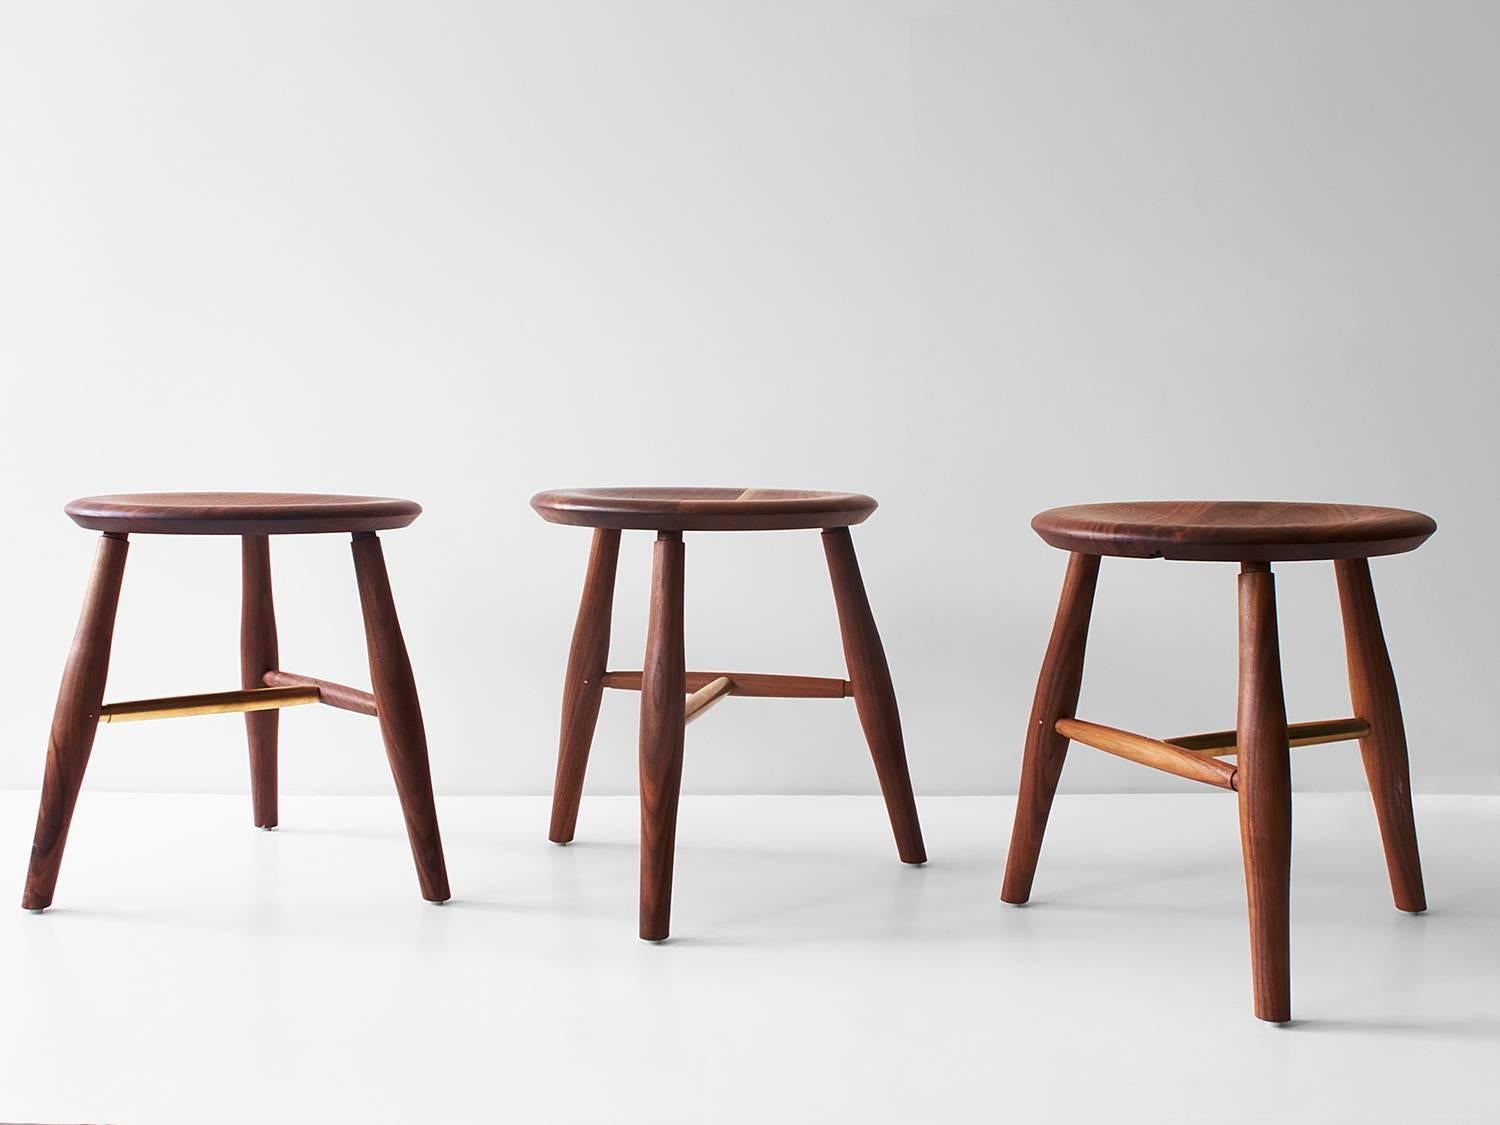 The Swell Stool Is A Turned And Carved Dining Height Stool With A  Comfortable 16